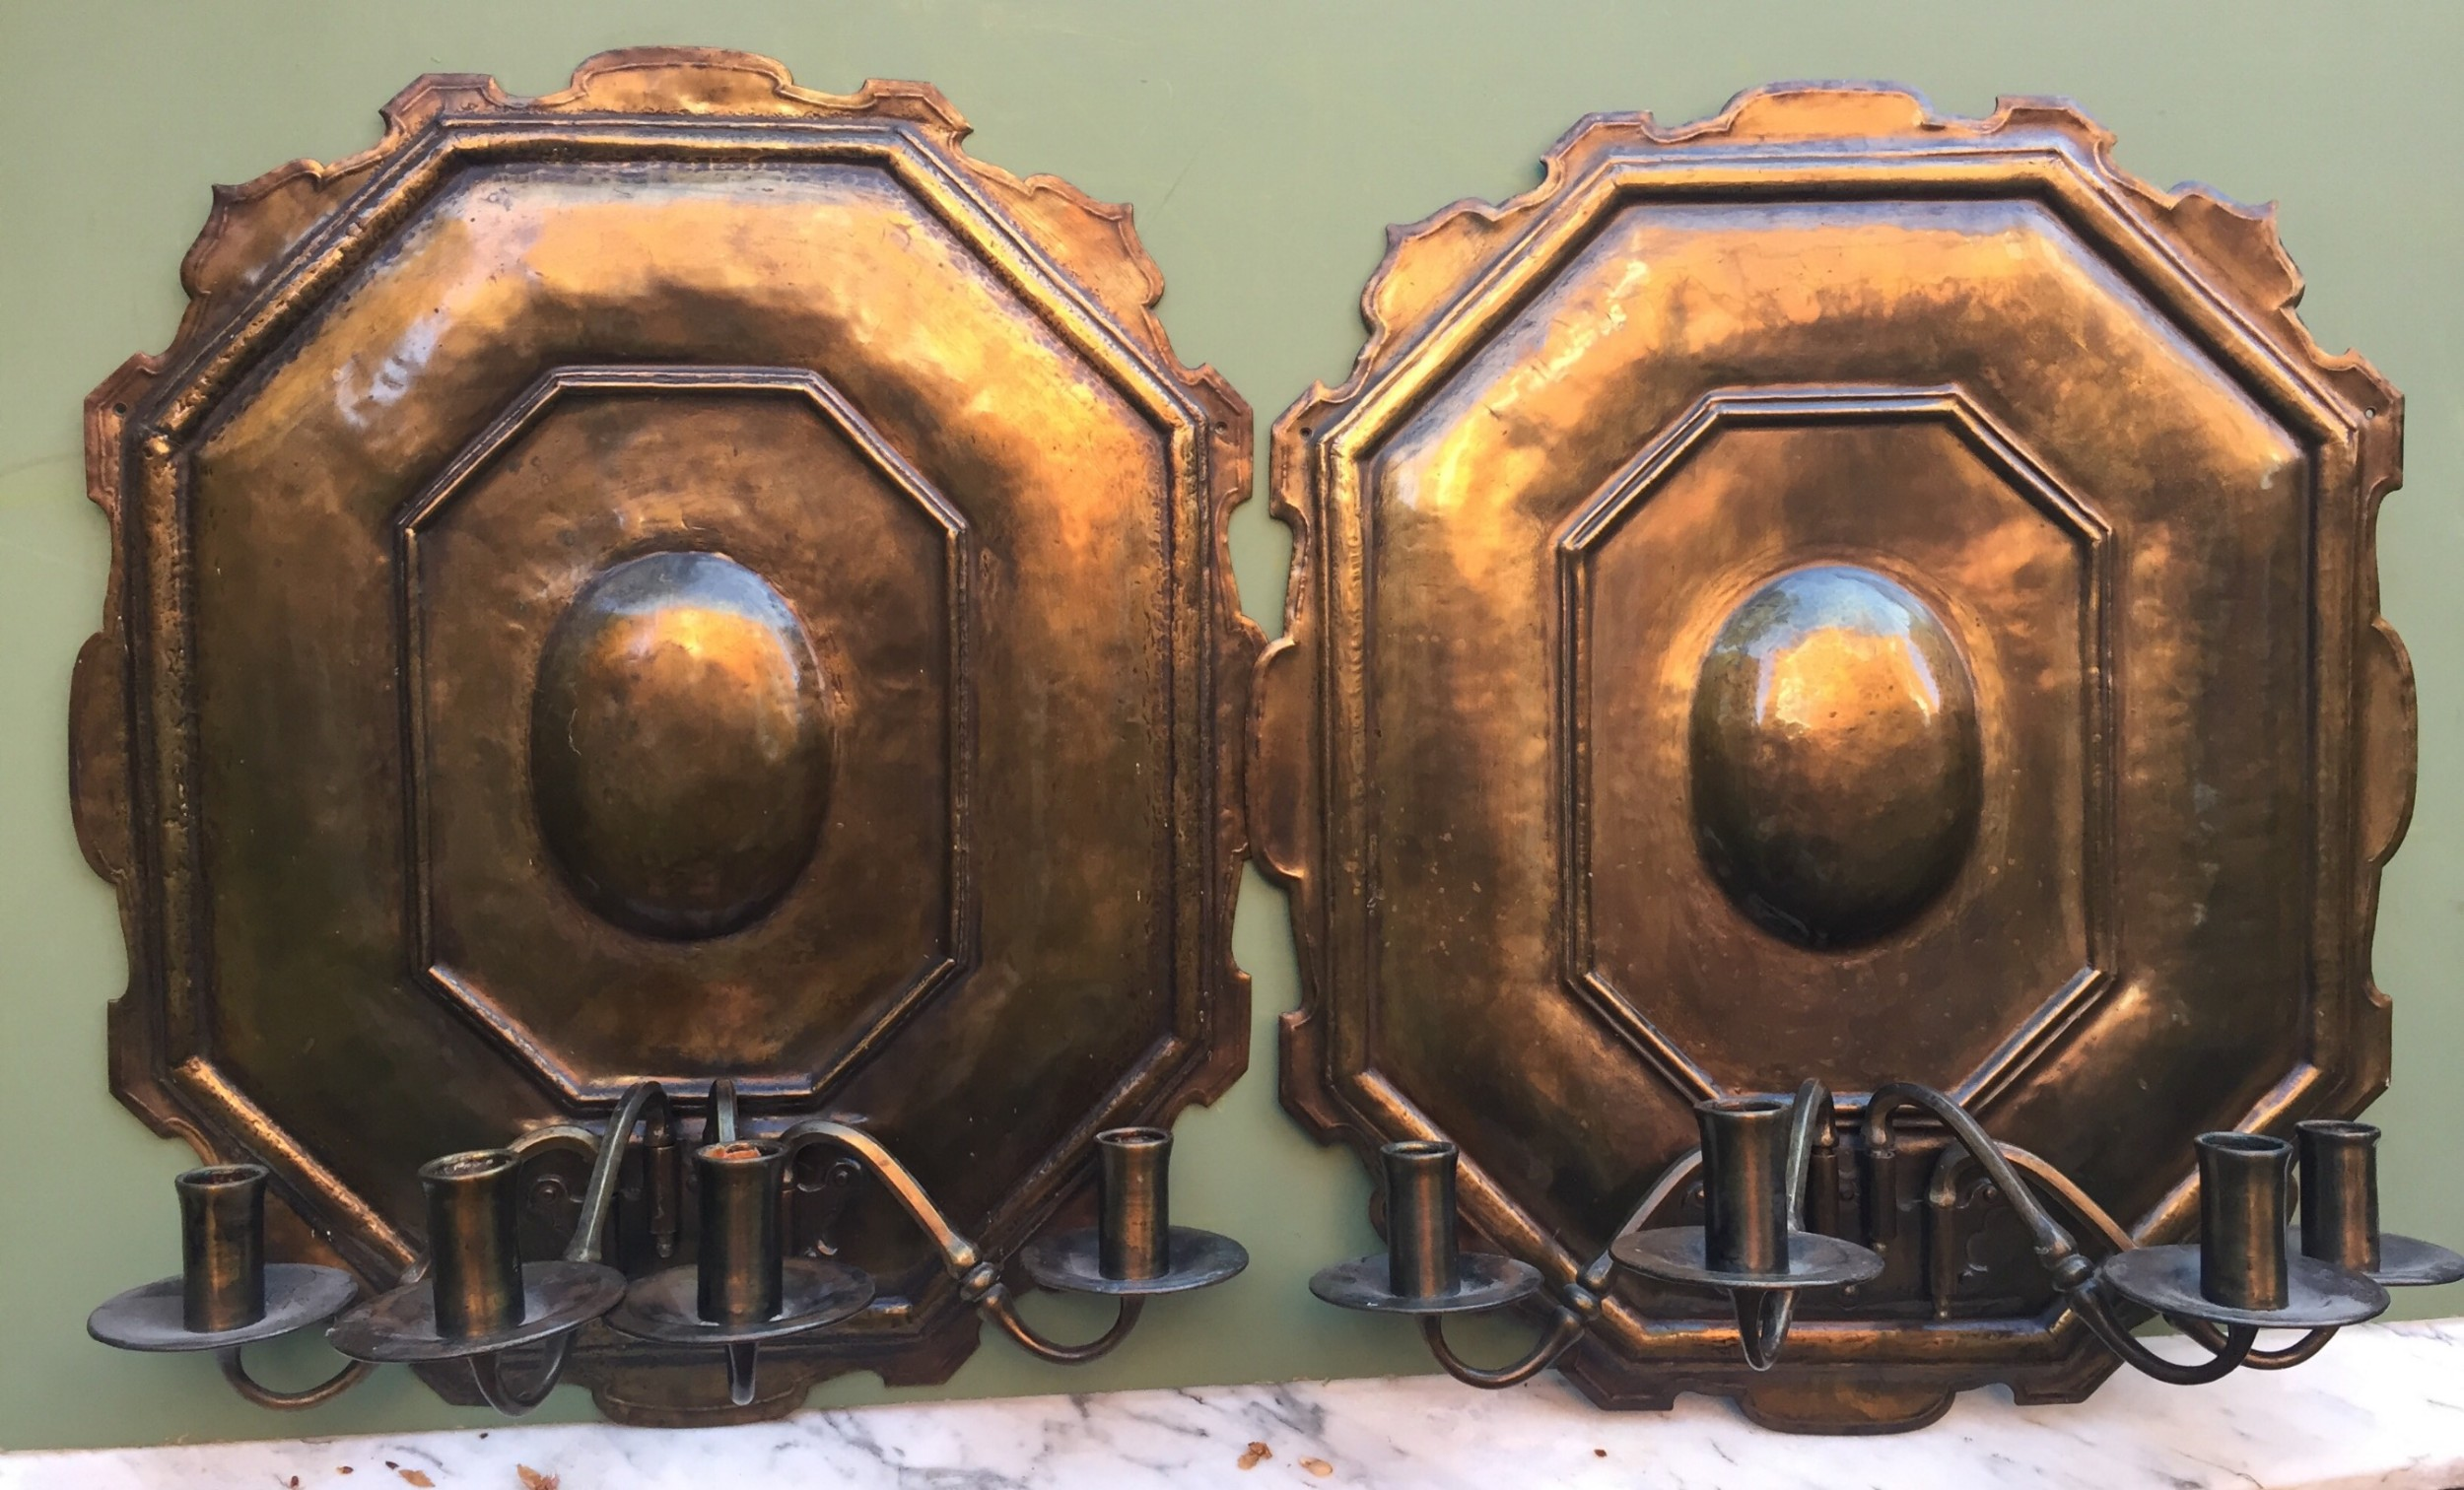 pair of late c19th early c20th brass 4branch candle walllights in the the late c17th style